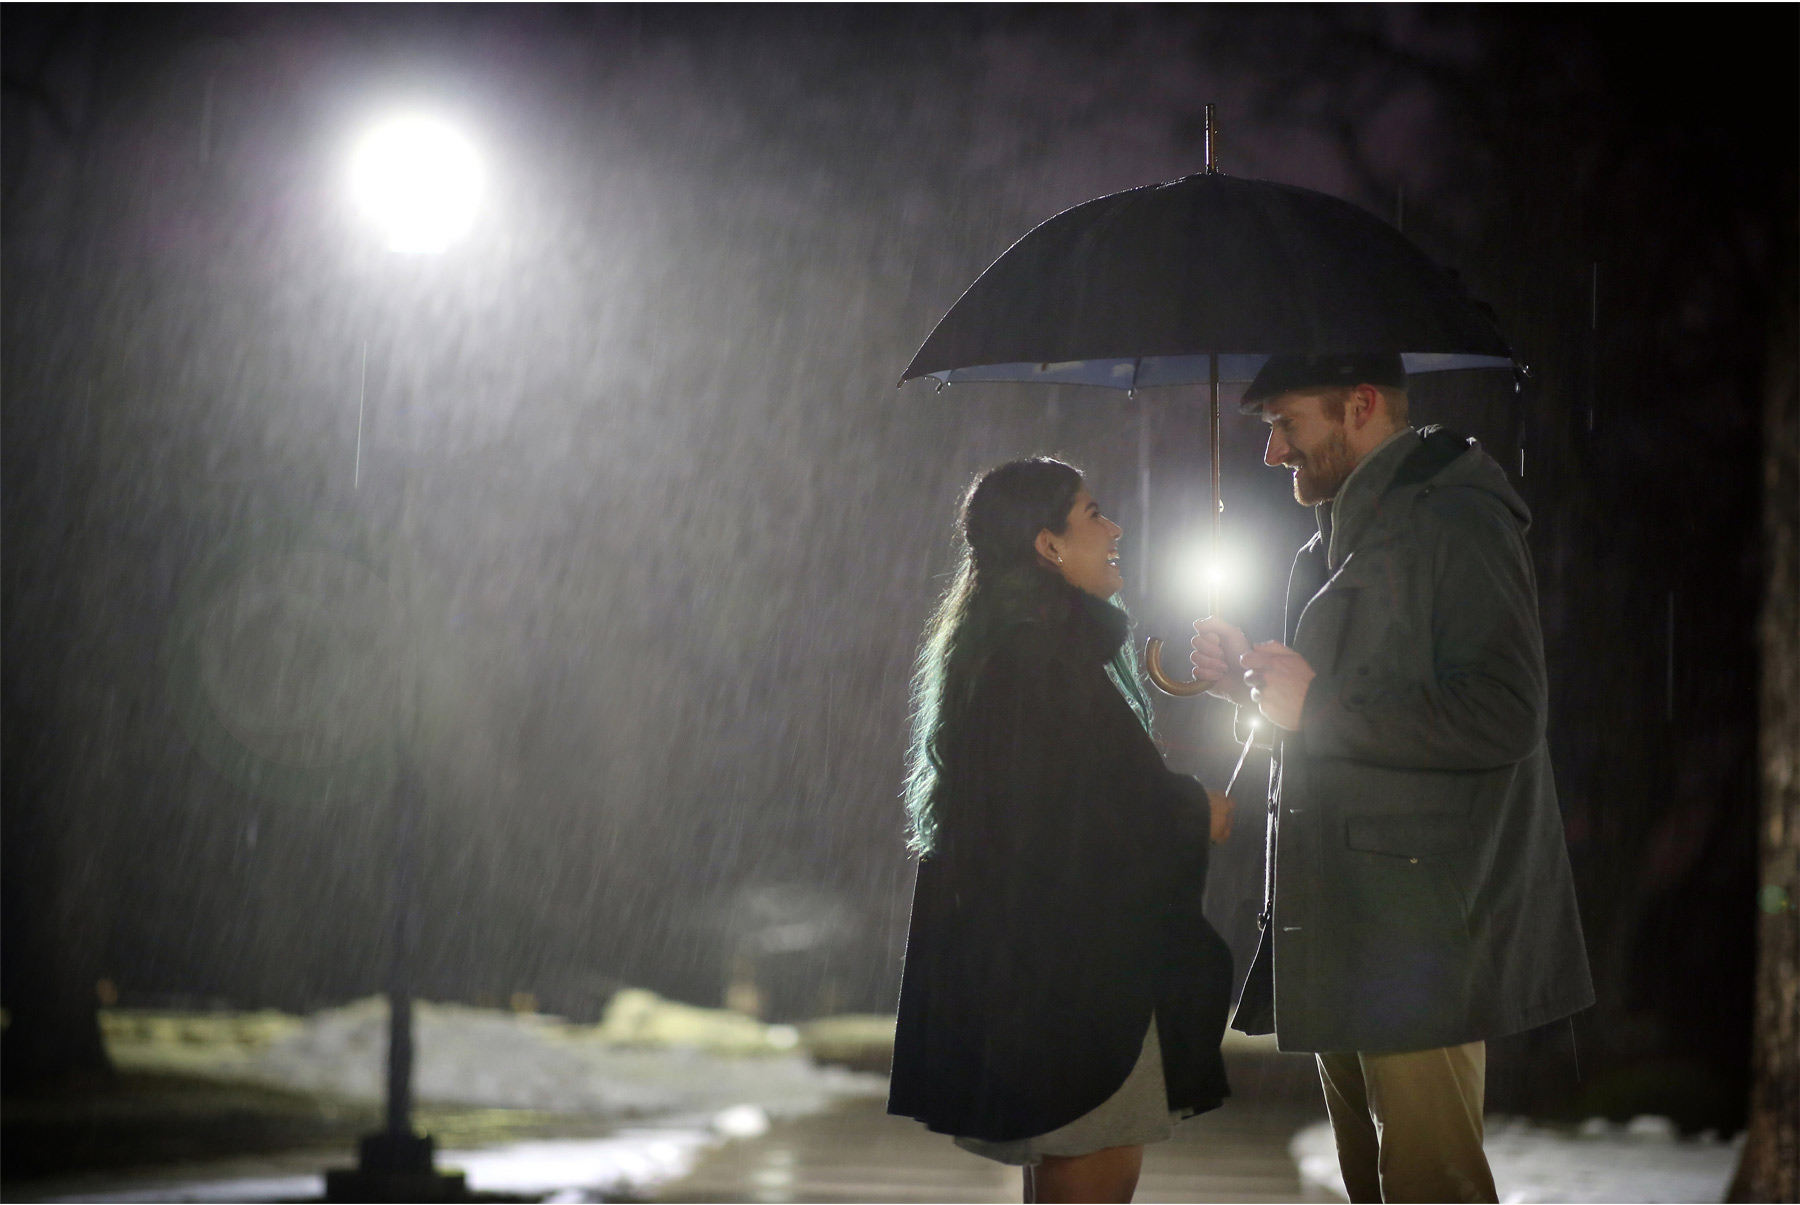 11-Harry-Potter-Themed-Engagement-Session-Minnesota-Wedding-Photography-Andrew-Vick-Night-Rain-Glowing-Wands-Elena-and-Doug.jpg